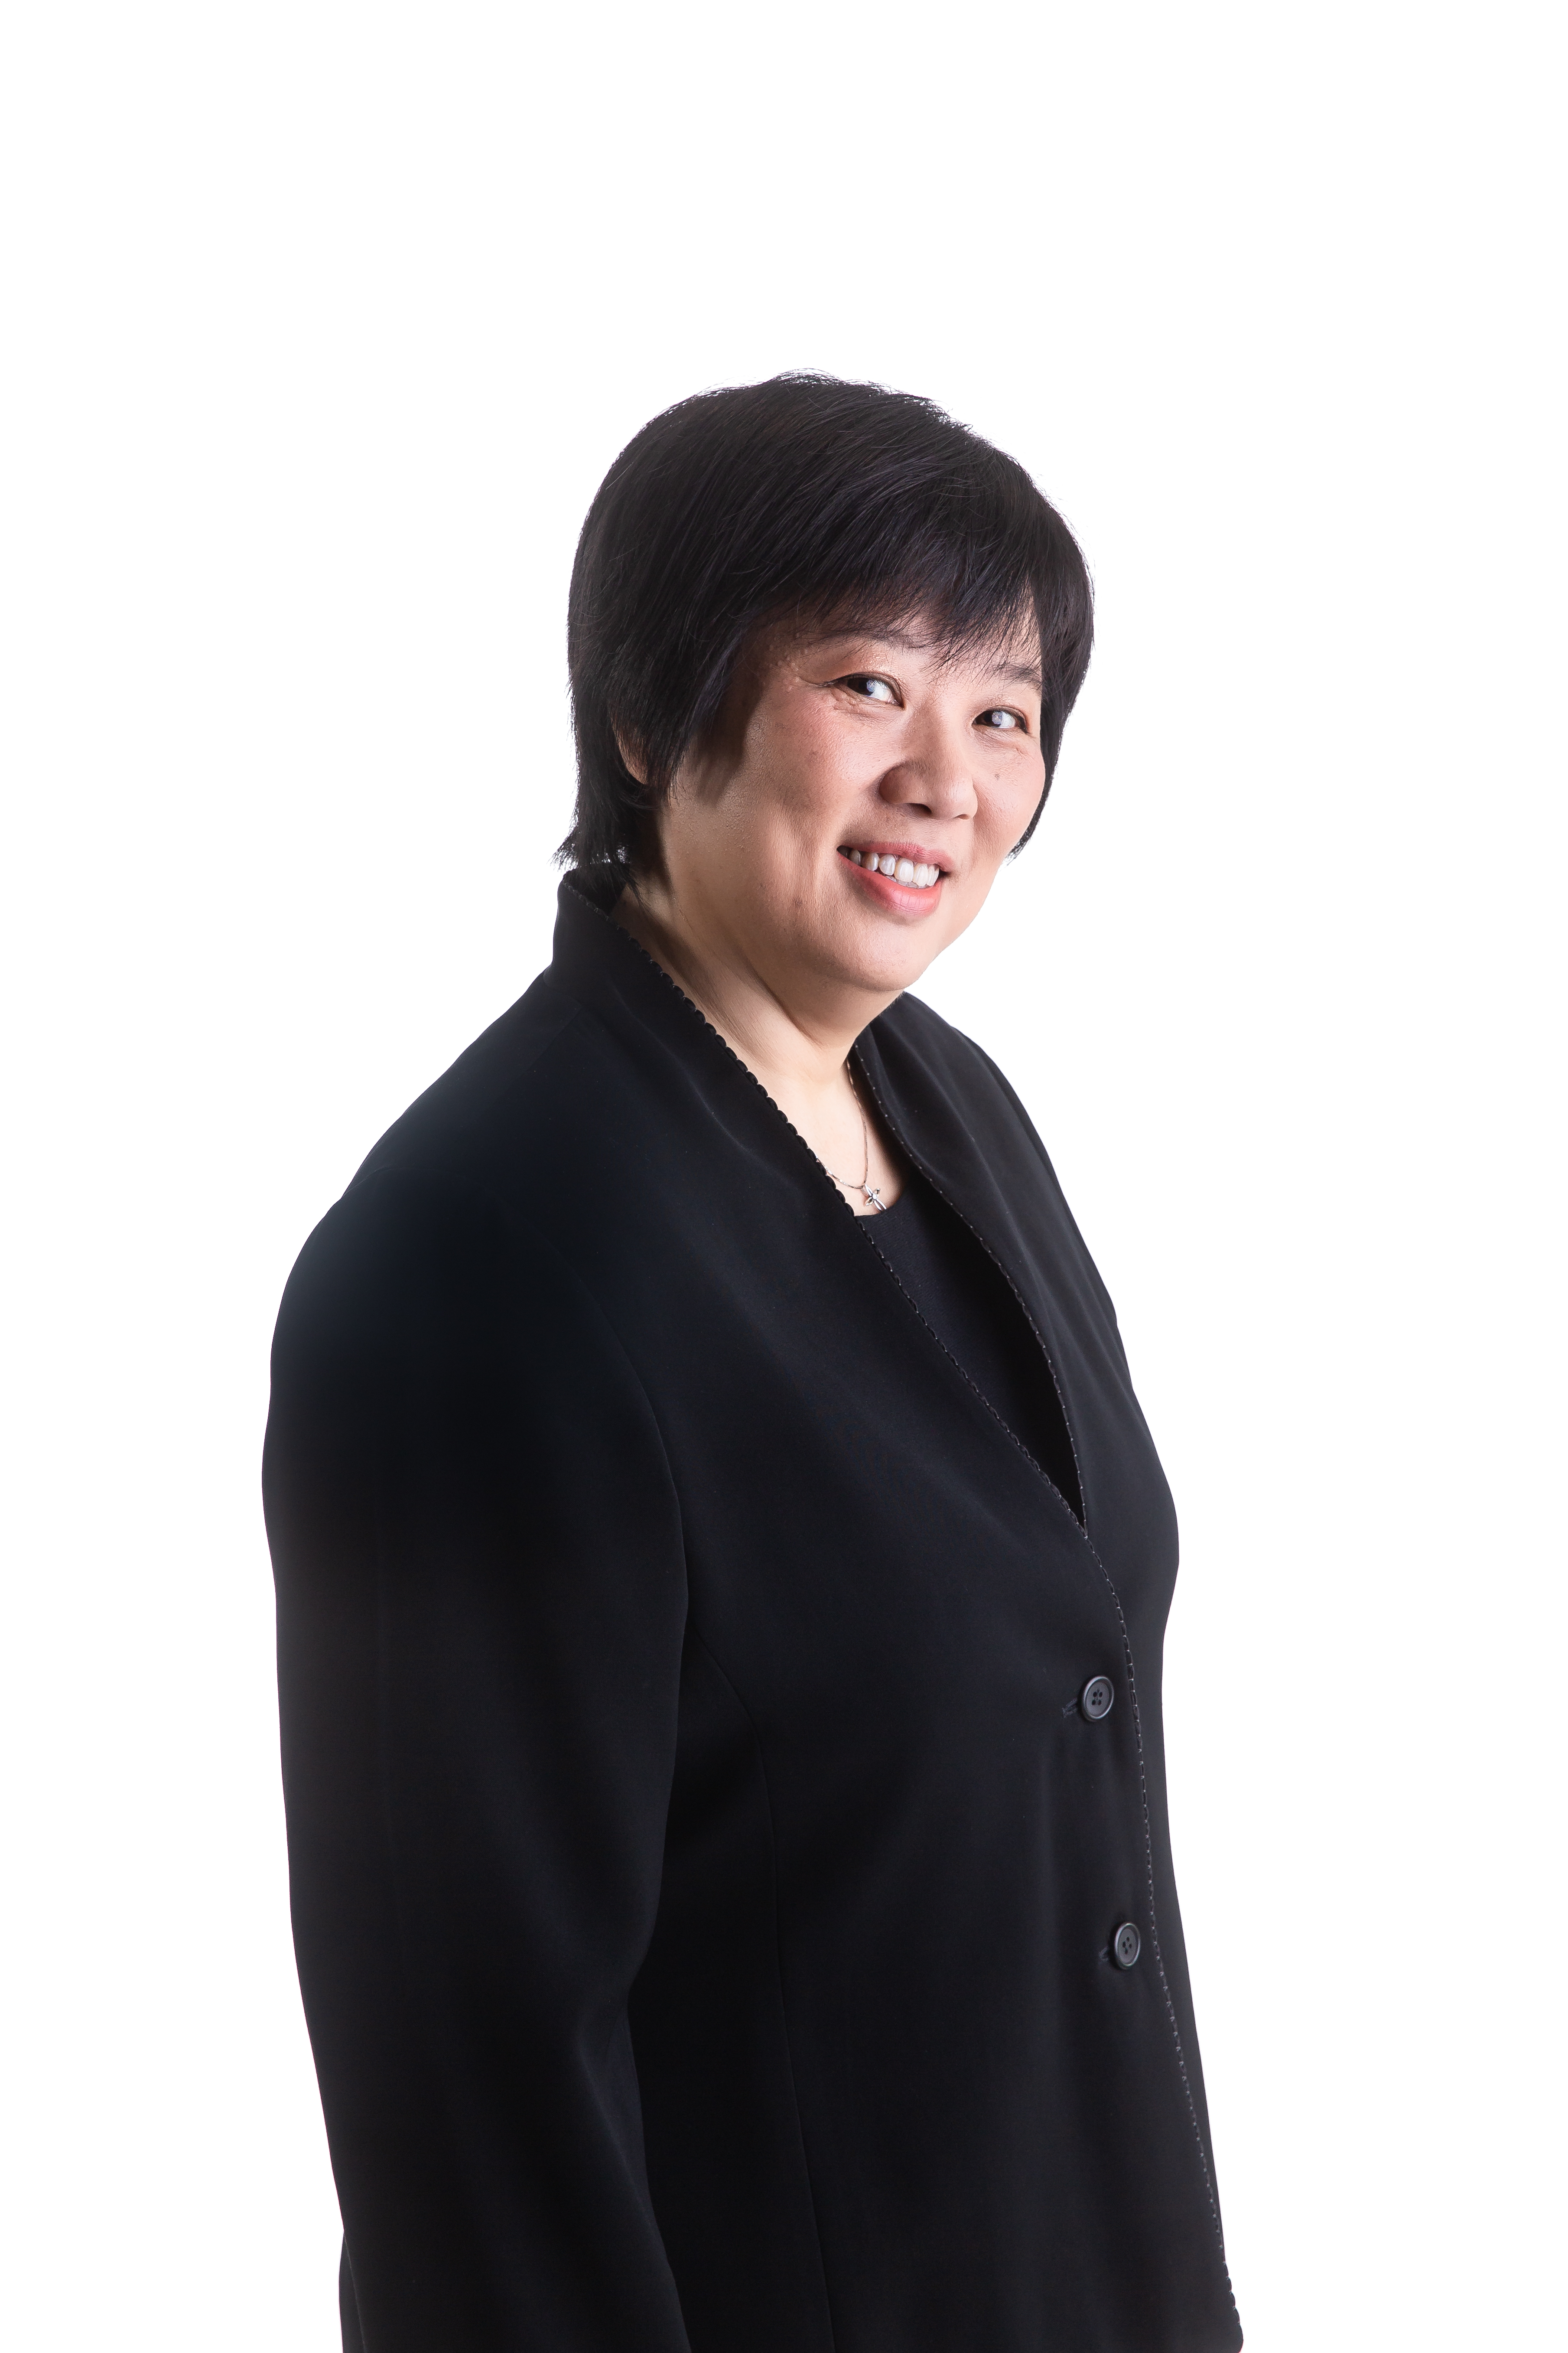 Dr Jenny Tang Poh Lin - General Paediatric | Asthma, Sleep, Lung, Allergy